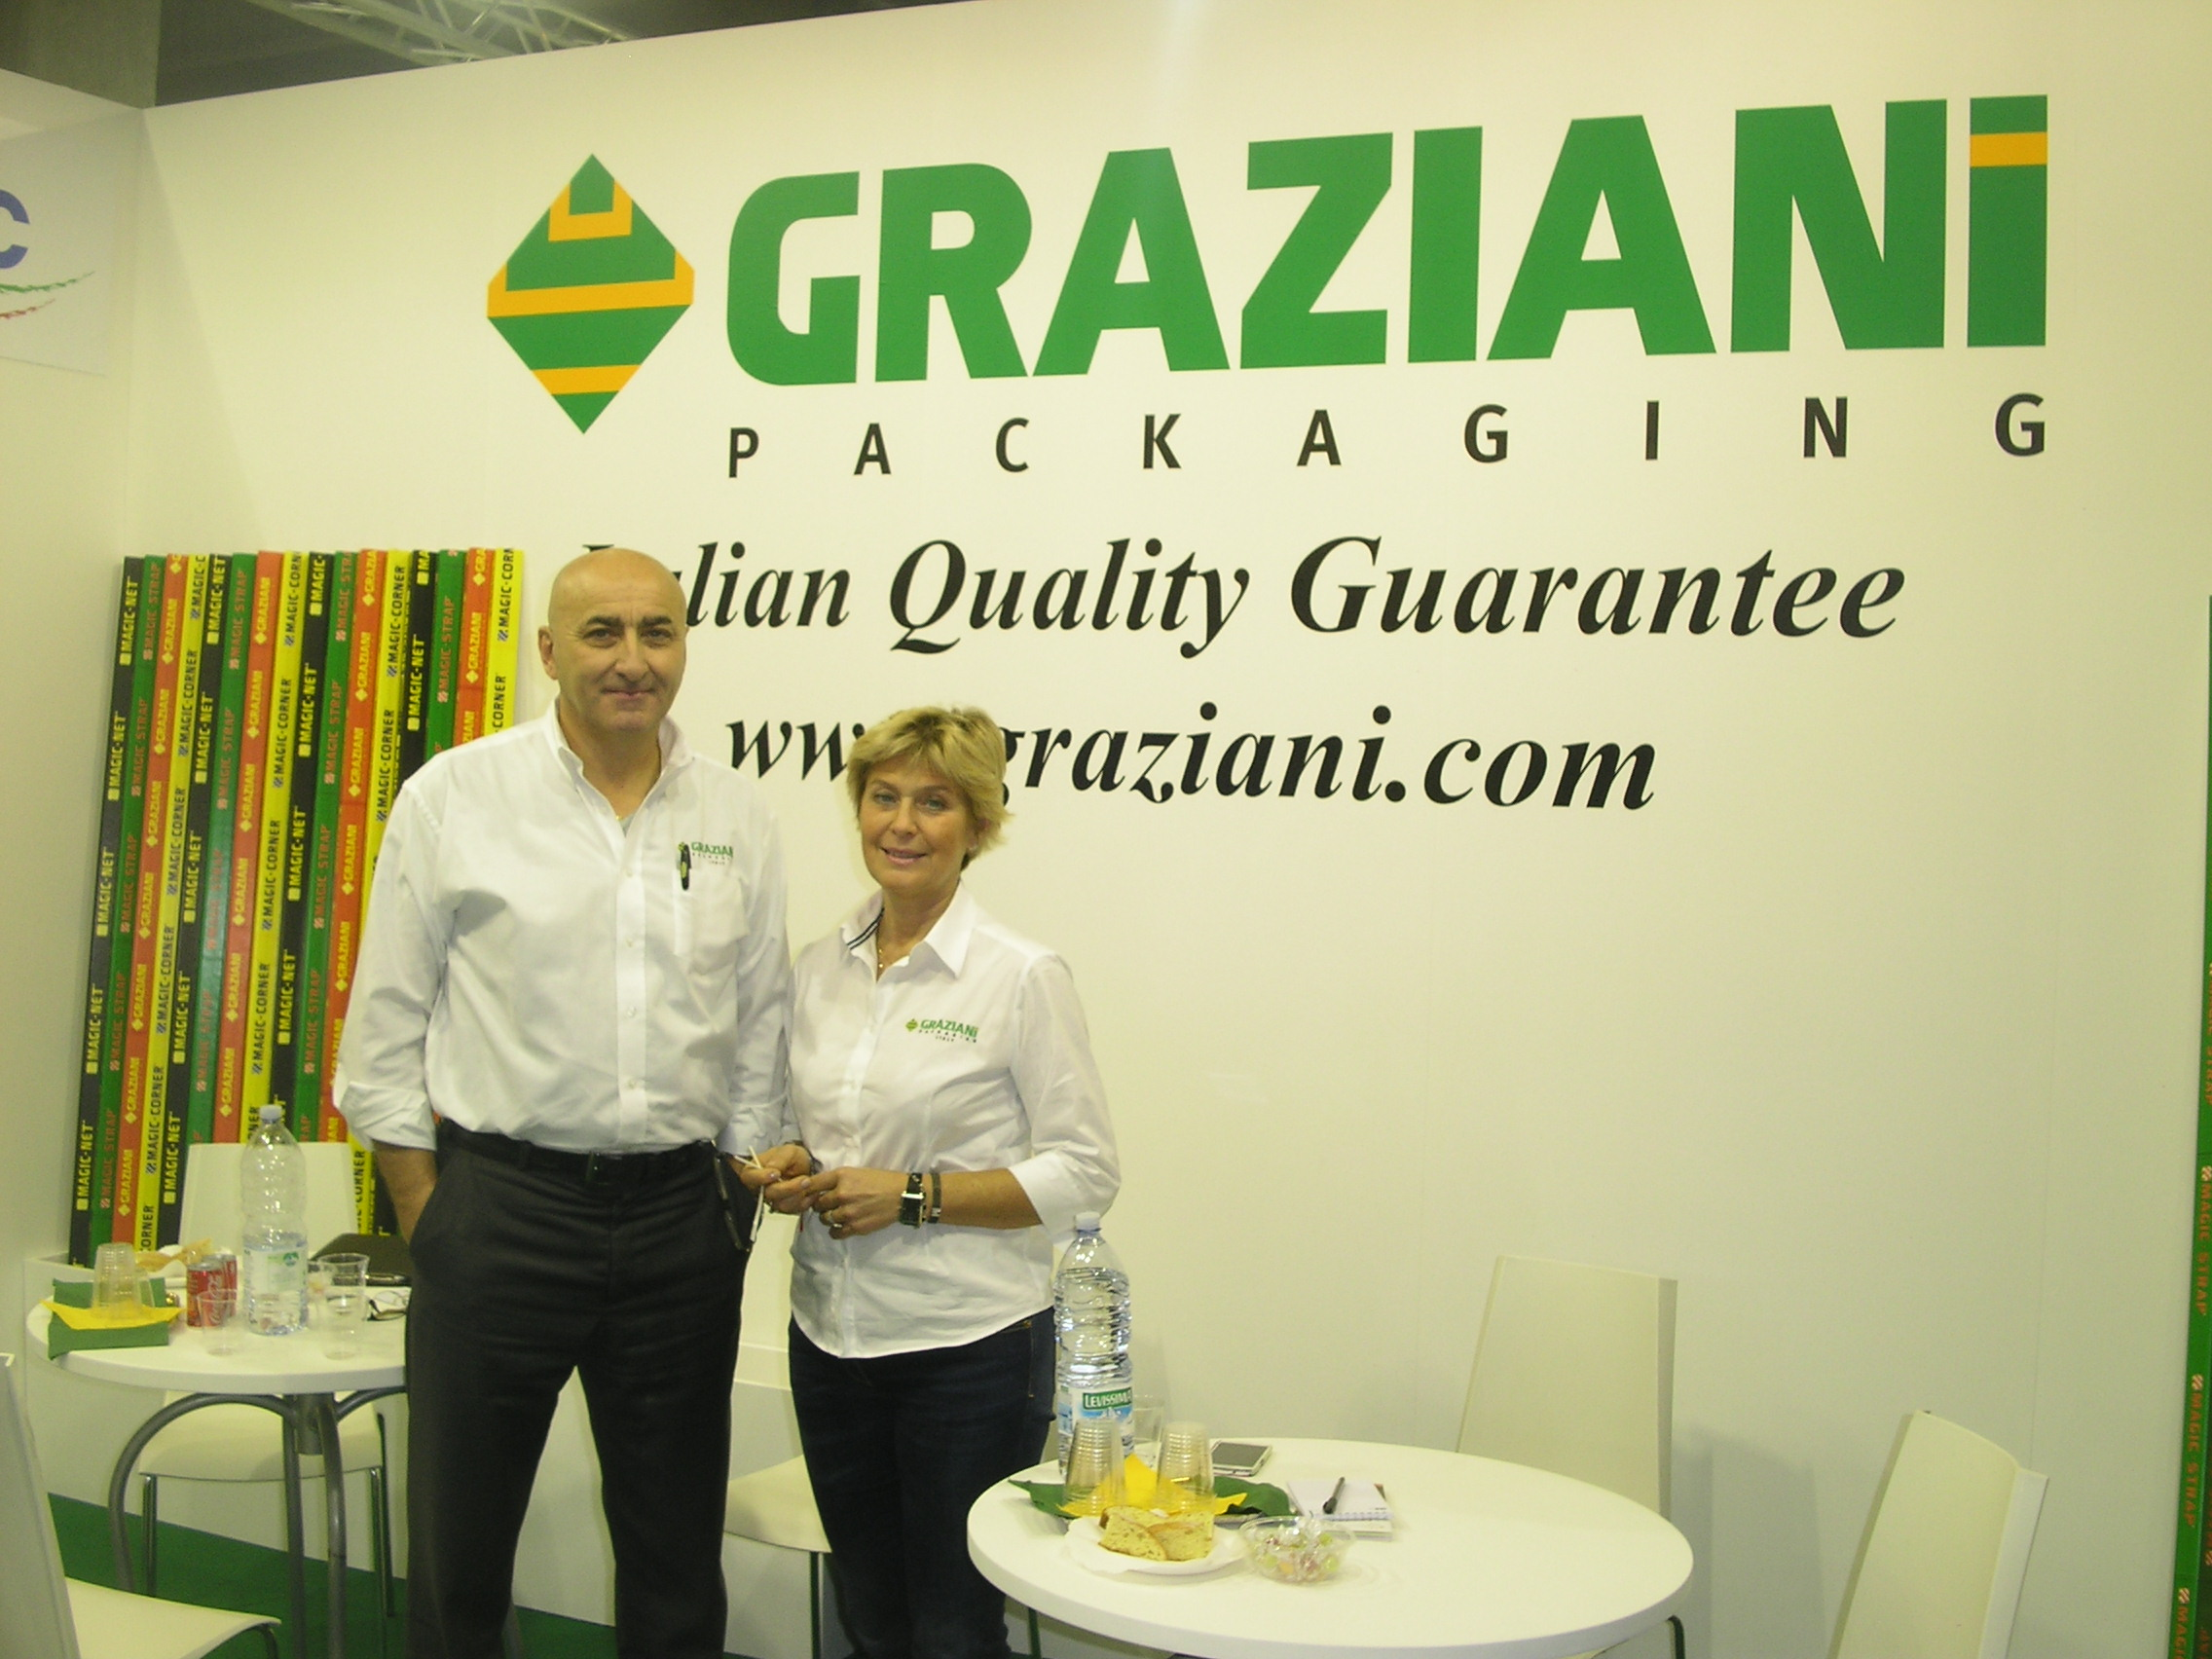 Graziani-packagingpresents the MagicCornerX-TOP corner board for the very first time in Italy